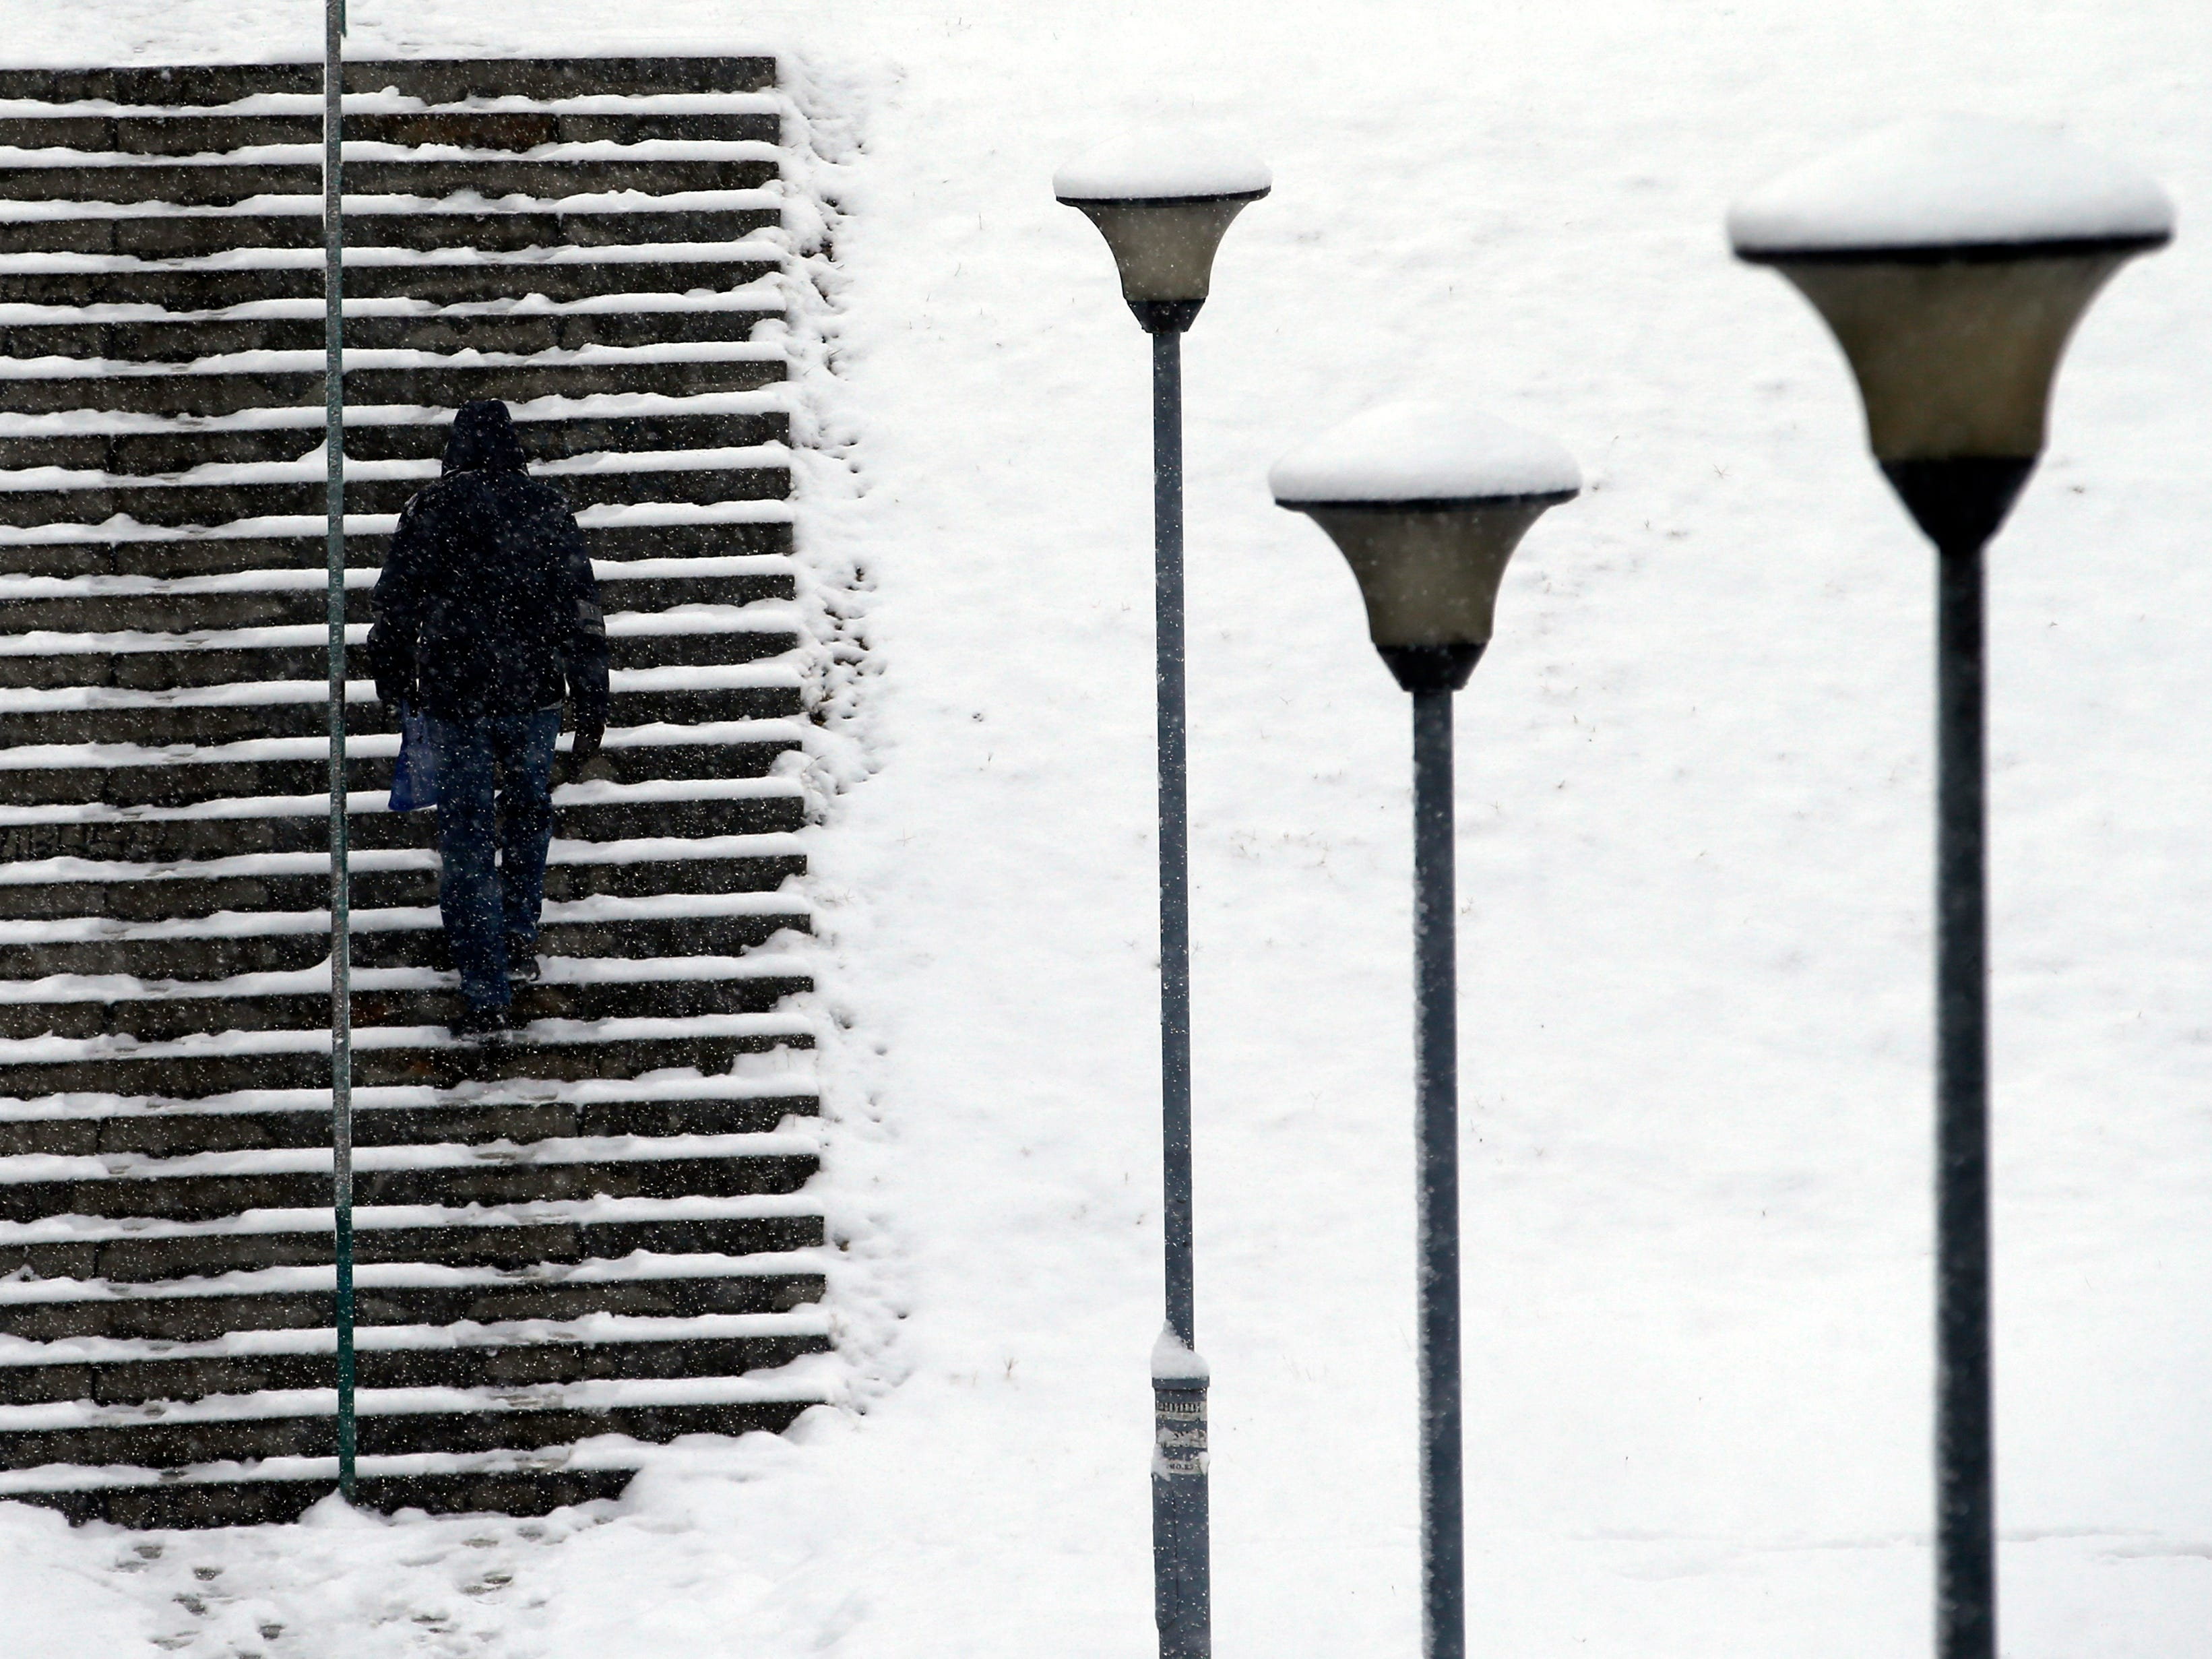 A man walks through a snow-covered park in Belgrade, Serbia, Thursday, Jan. 3, 2019. Meteorologists predict heavy snowfall and sub zero temperatures in the Western Balkans throughout the week.